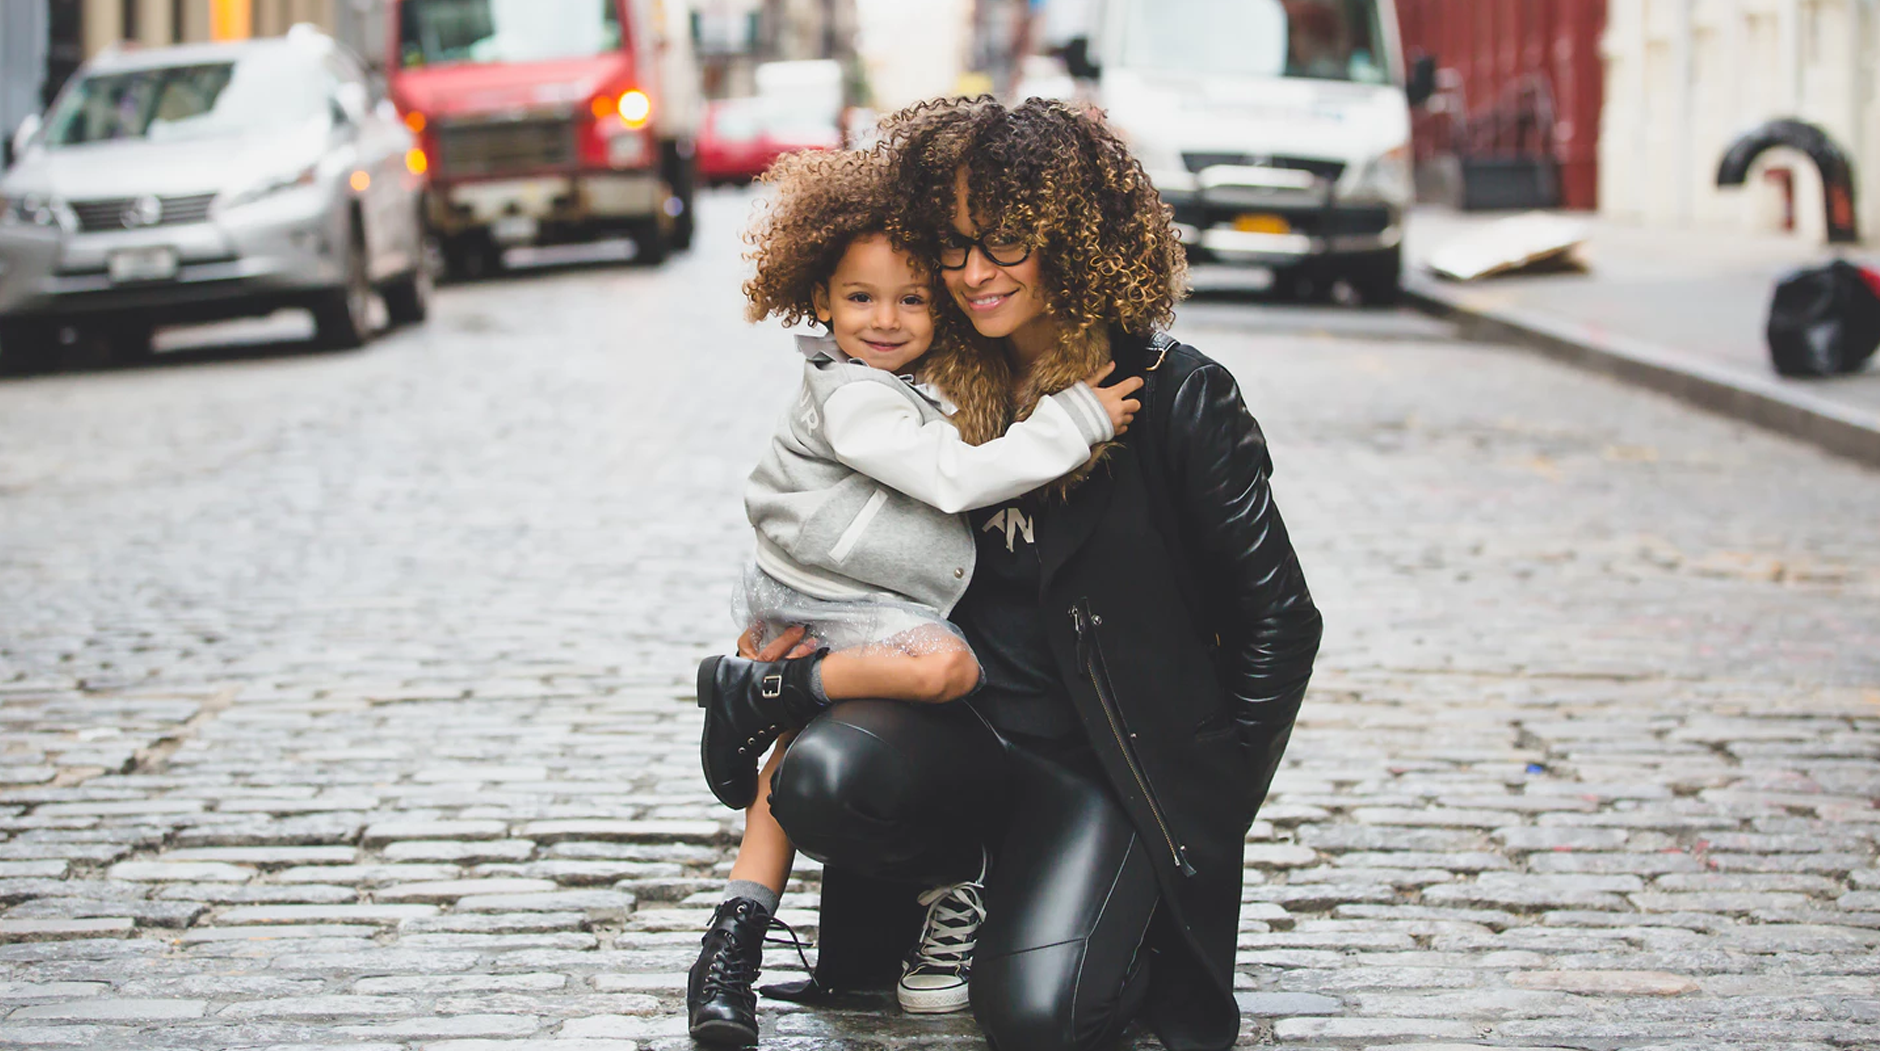 How to Prepare Your Kids Post Image photography of woman carrying baby near street during daytime - Child Welfare Tips: What Childcare Providers and Parents Should Know